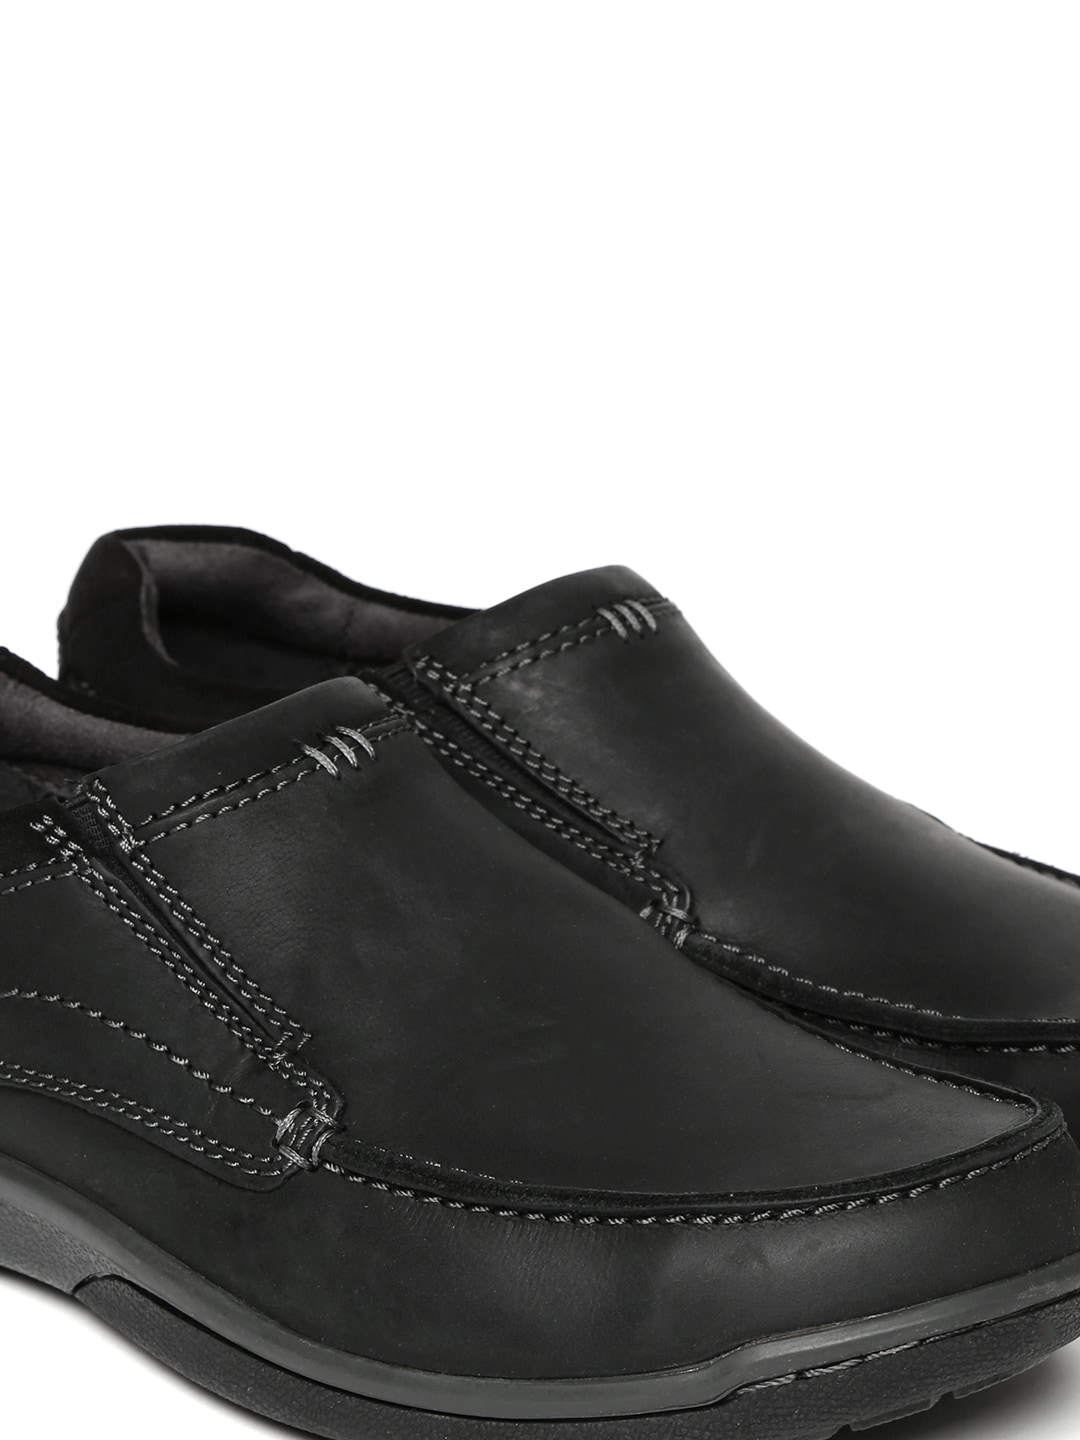 Clarks Exclusive Clarks Shoes Online Store In India Myntra